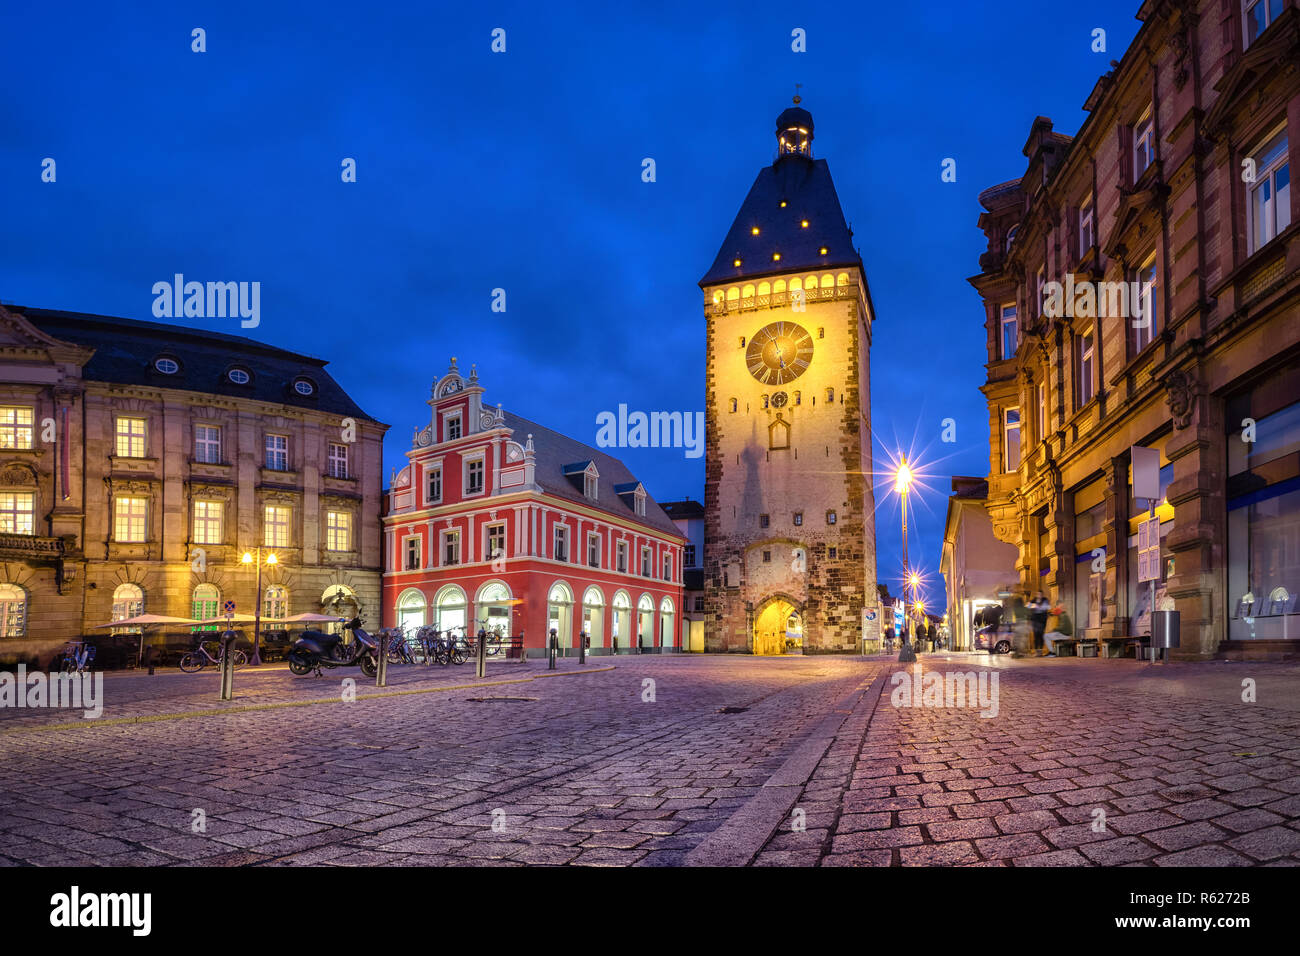 Old Gate (Altpoertel) - medieval west city gate of Speyer, Germany. One of the largest (55 metres high) and most architecturally significant of the re - Stock Image